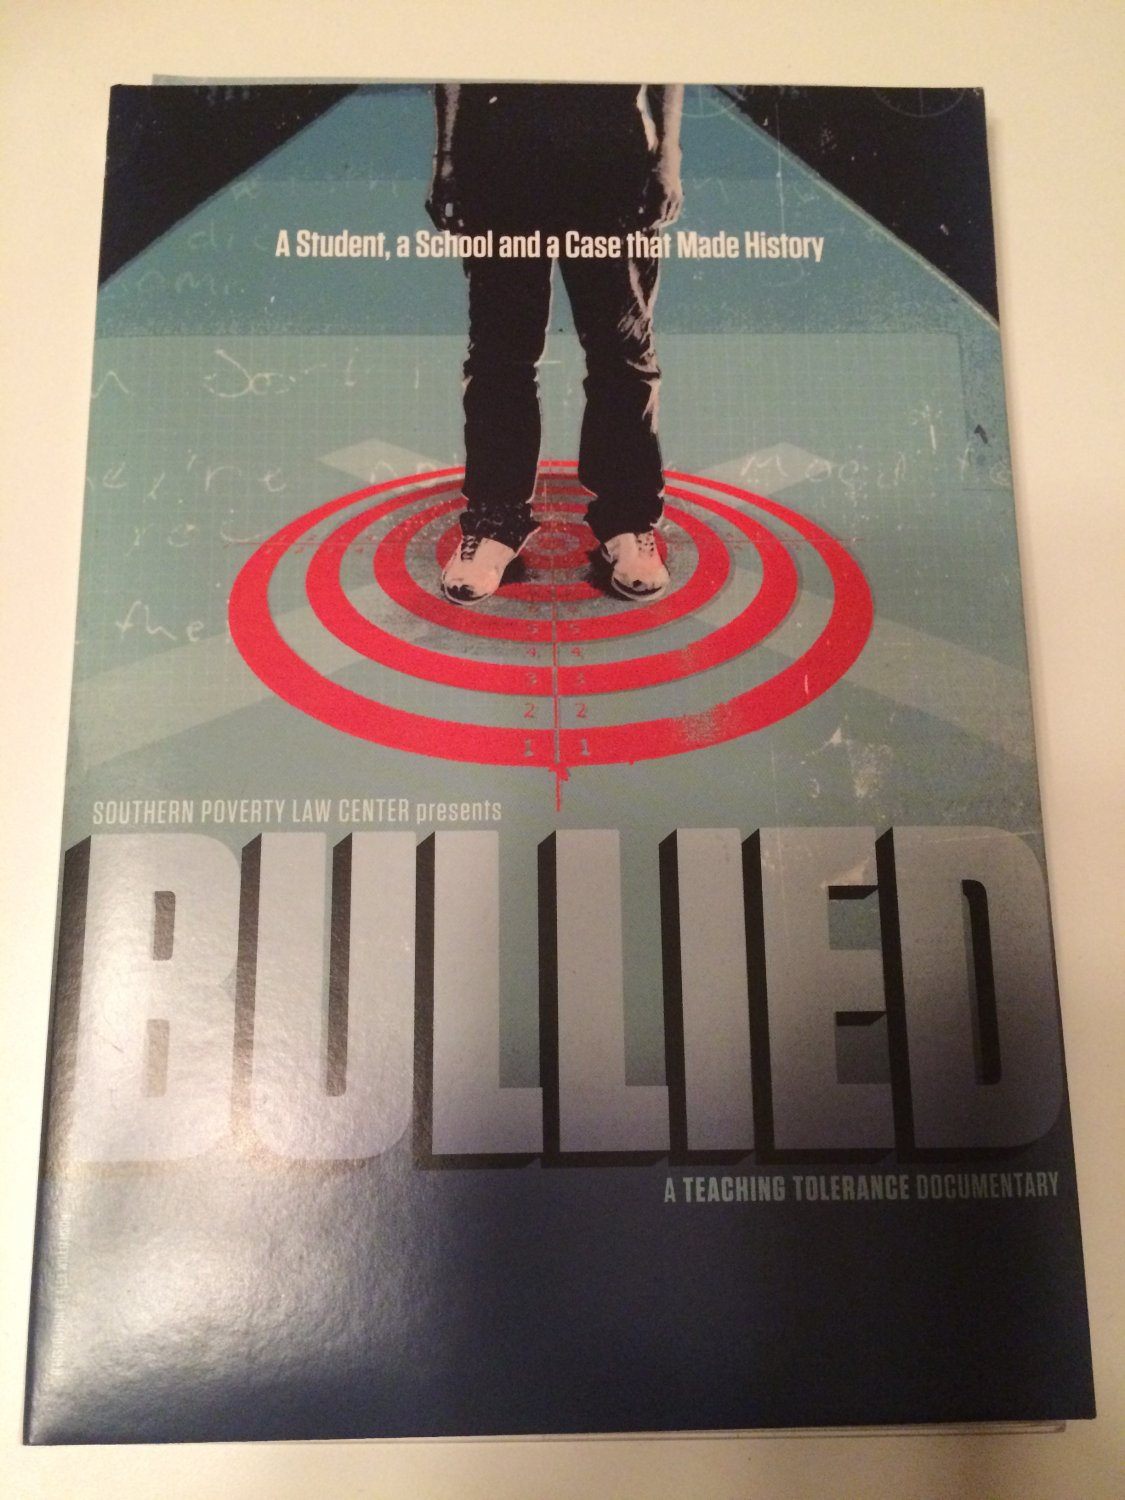 Bullied - A Student, a School and a Case That Made History (A Teaching Tolerance Documentary)